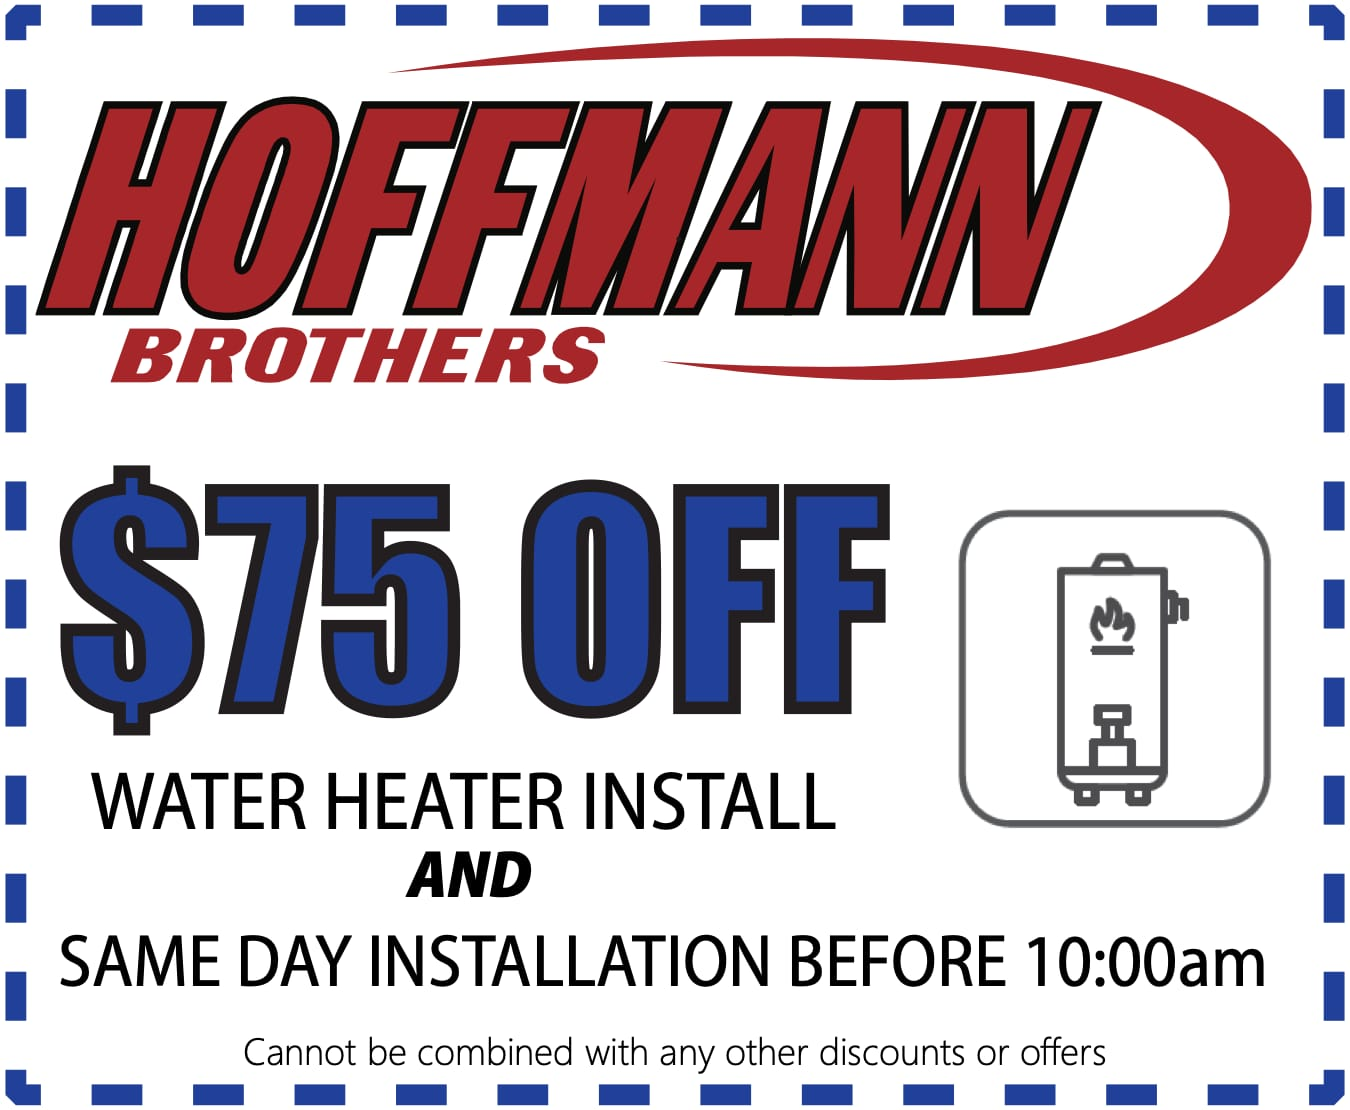 $75 off any water heater install coupon